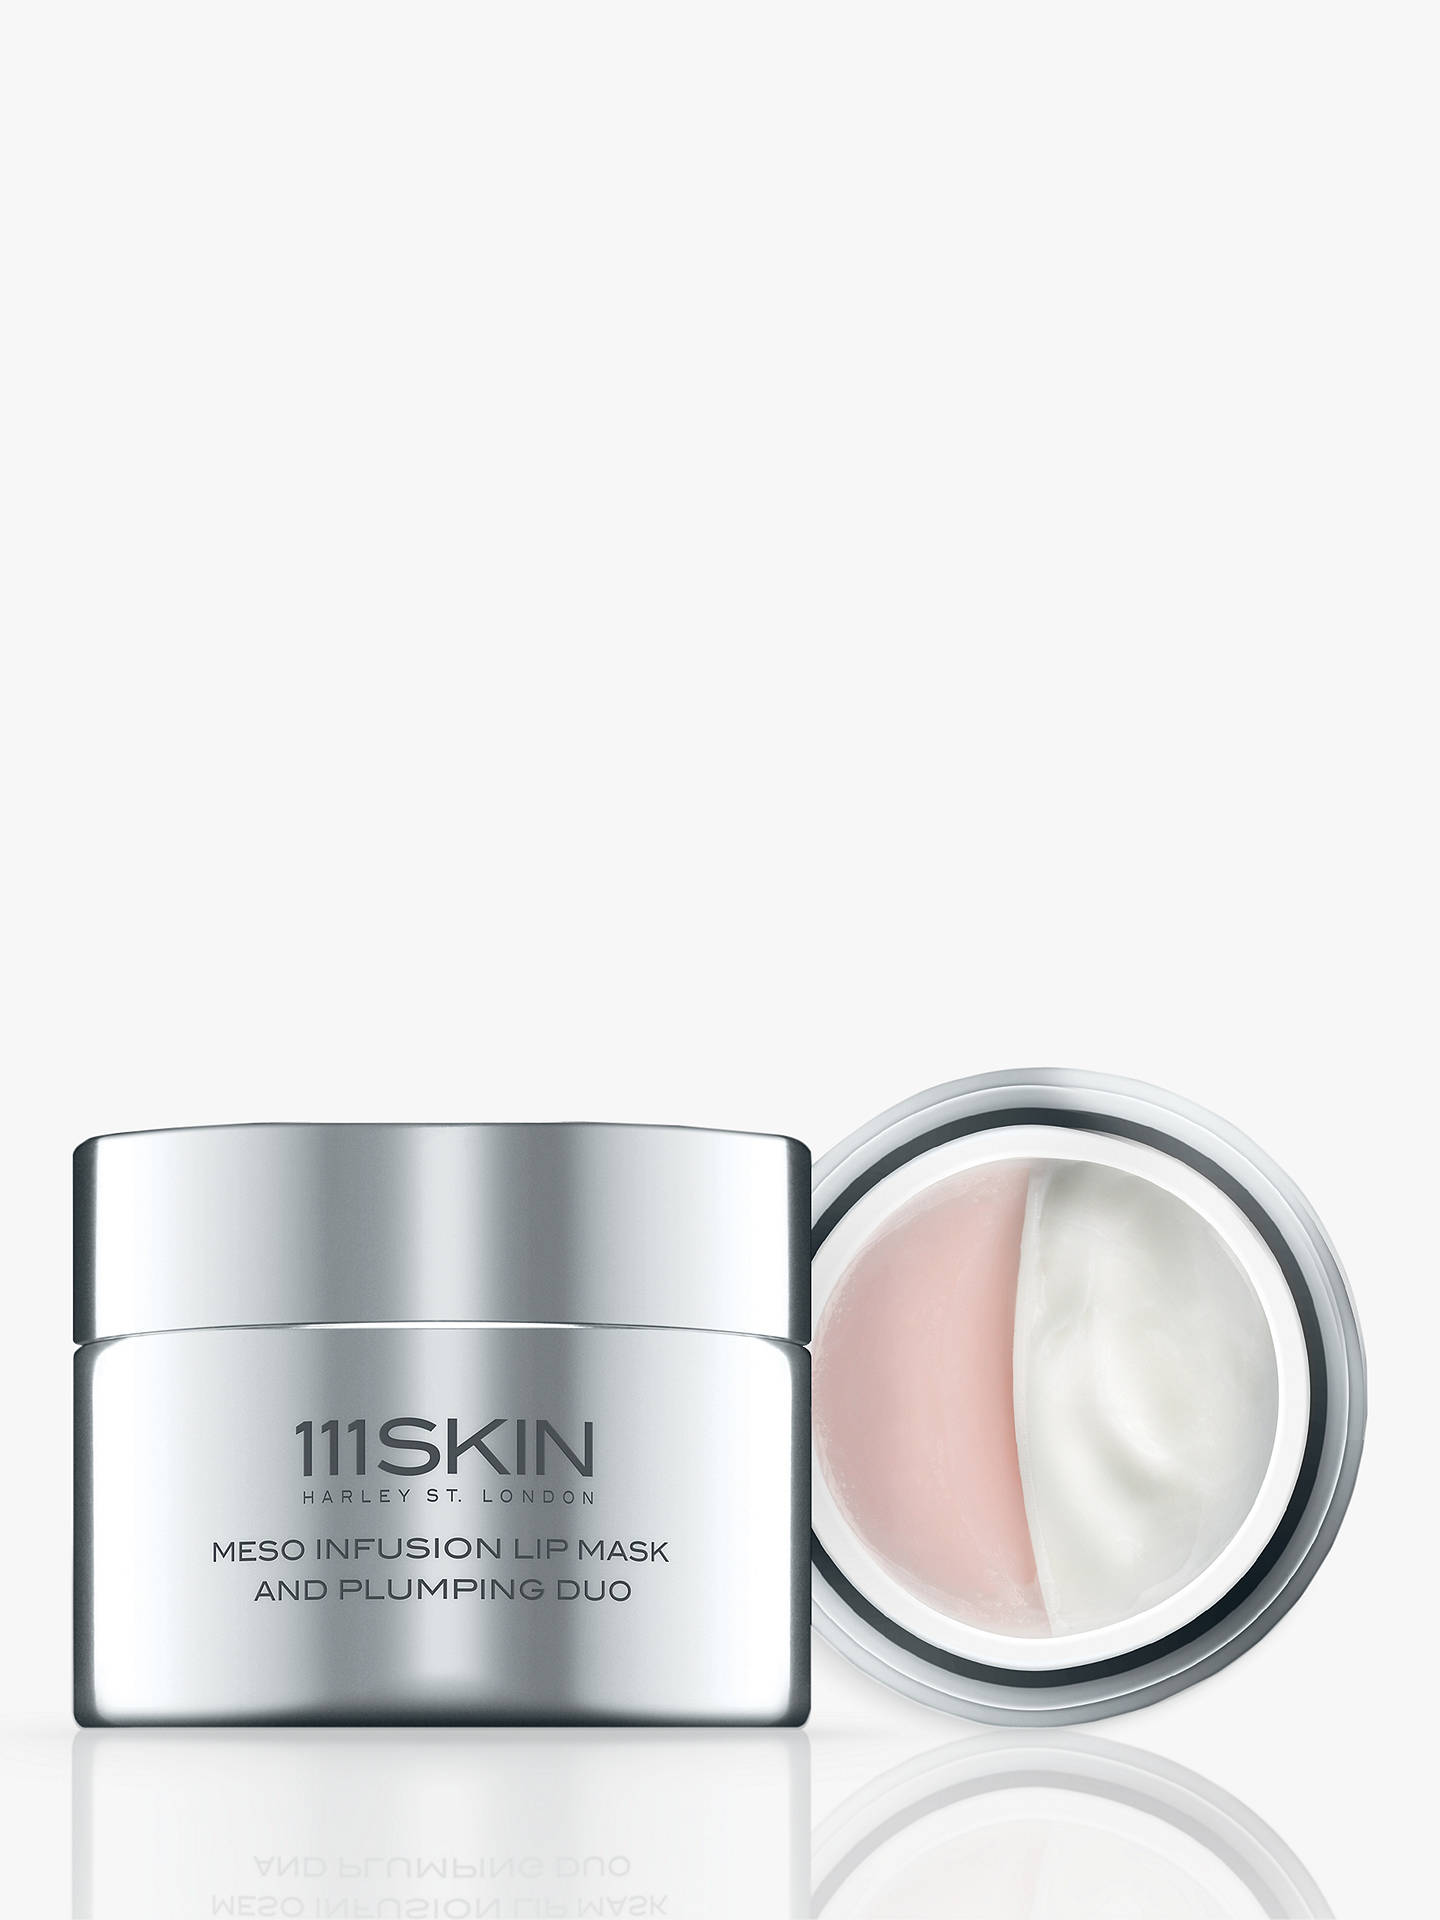 Buy 111SKIN Meso Infusion Lip Mask & Plumping Duo, 15ml Online at johnlewis.com